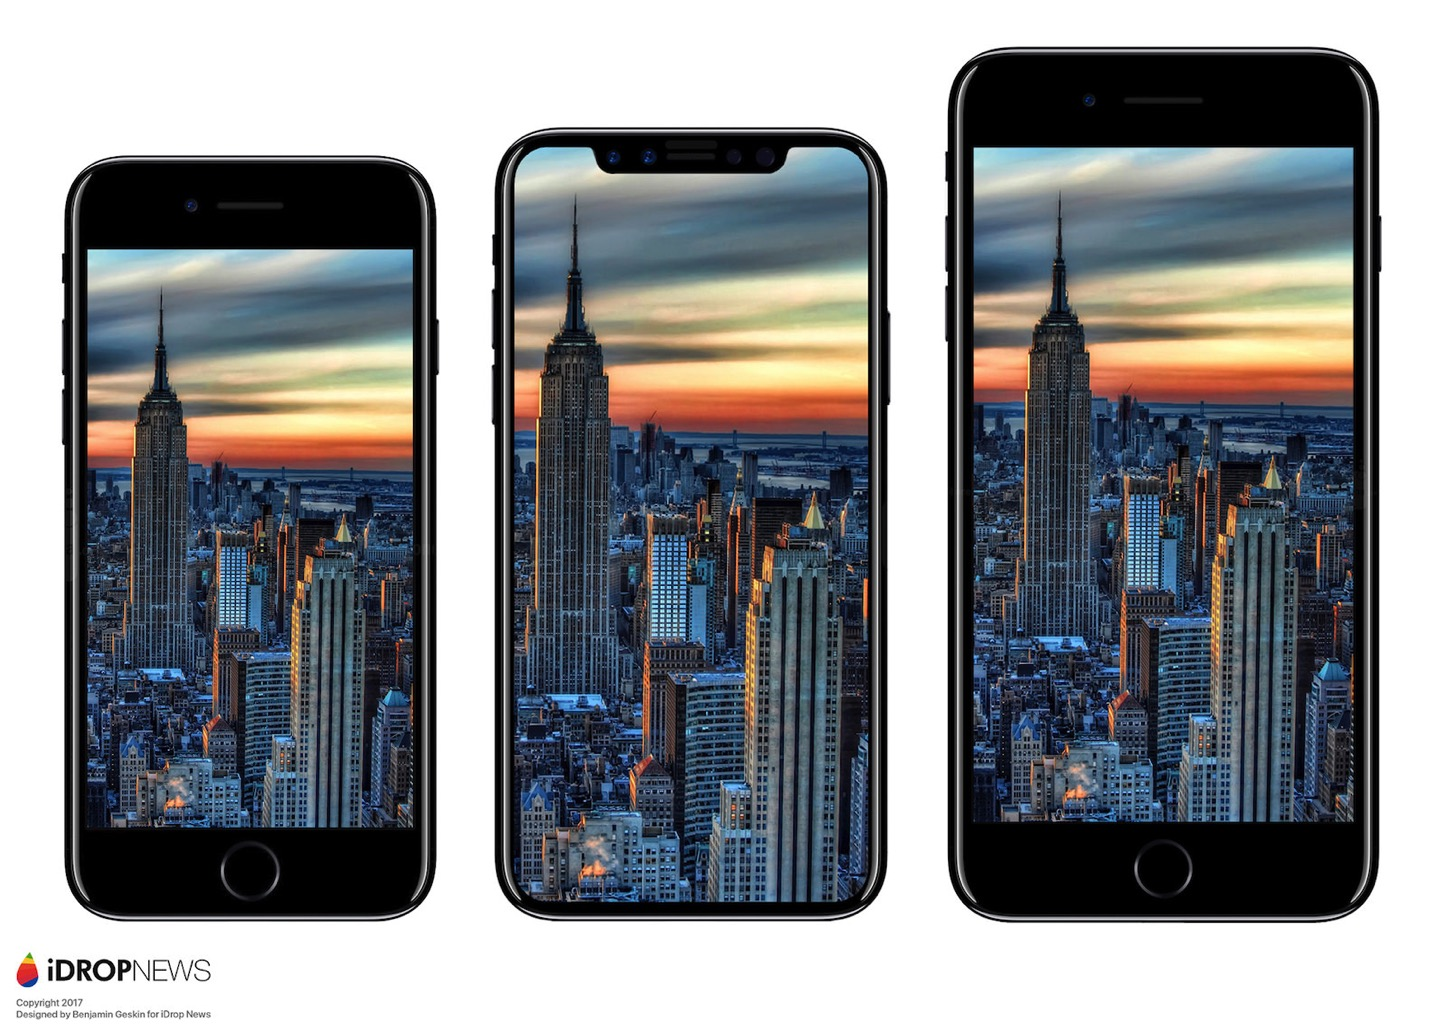 IPhone 8 Size Comparison iDrop News 8